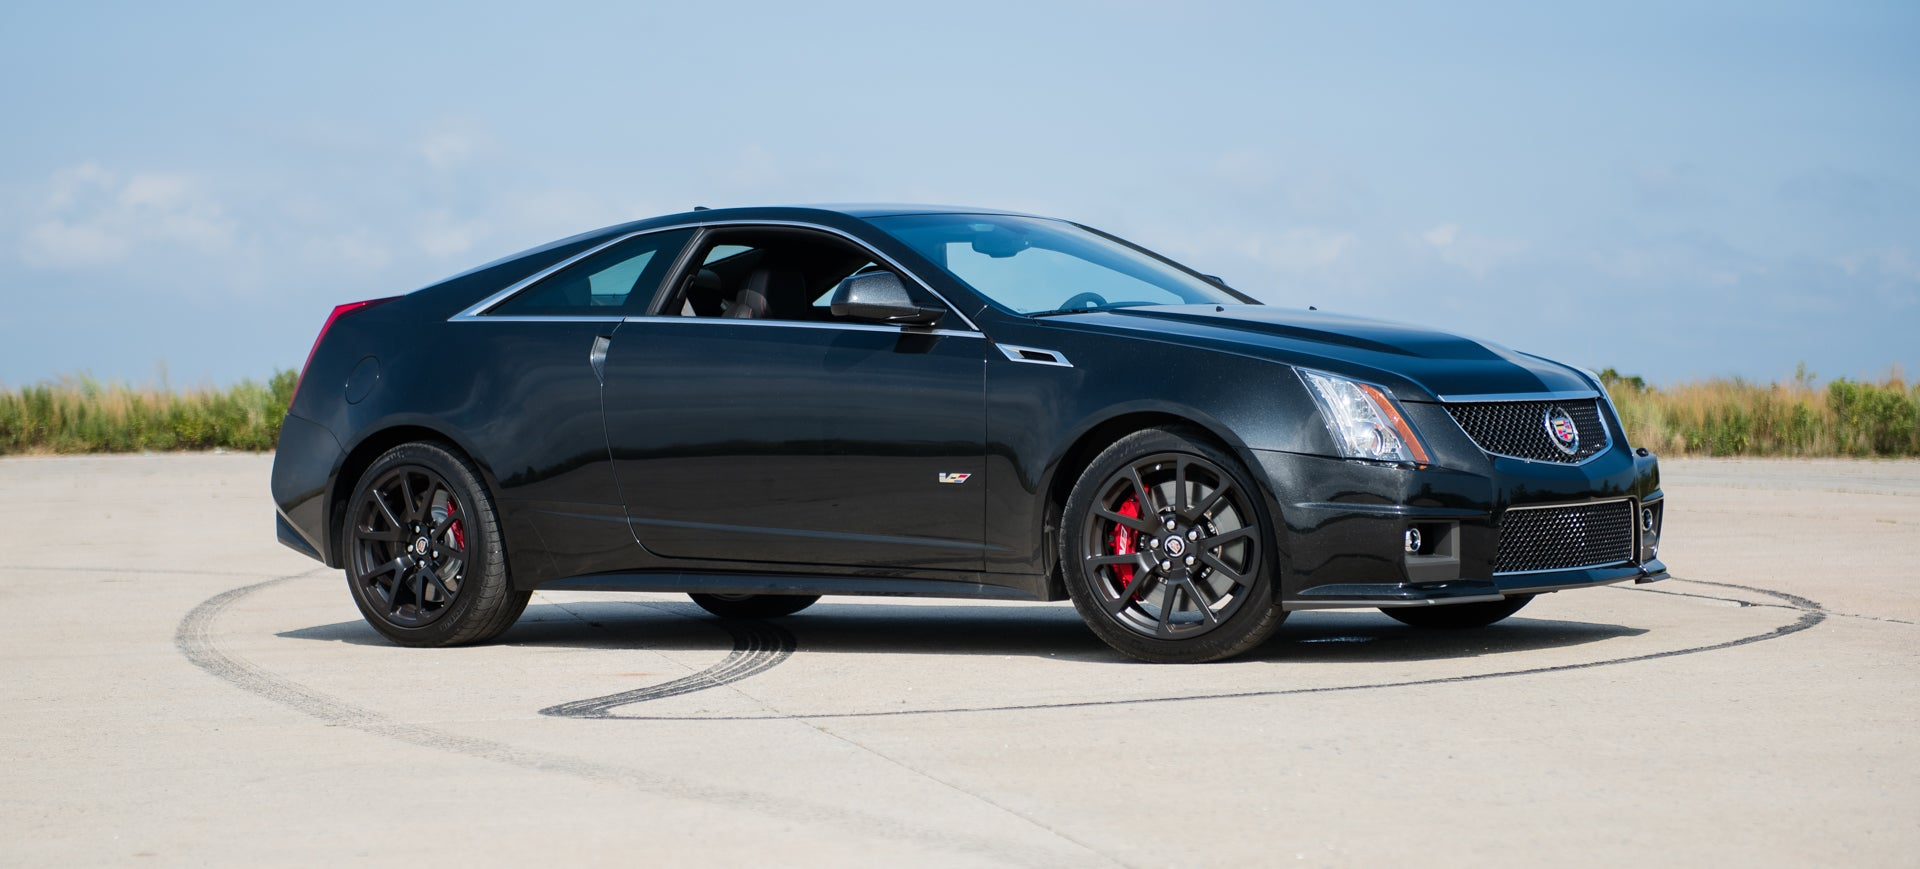 farewell to the cadillac cts v the best product of old gm rh jalopnik com cts v manual vs automatic cts v manual for sale